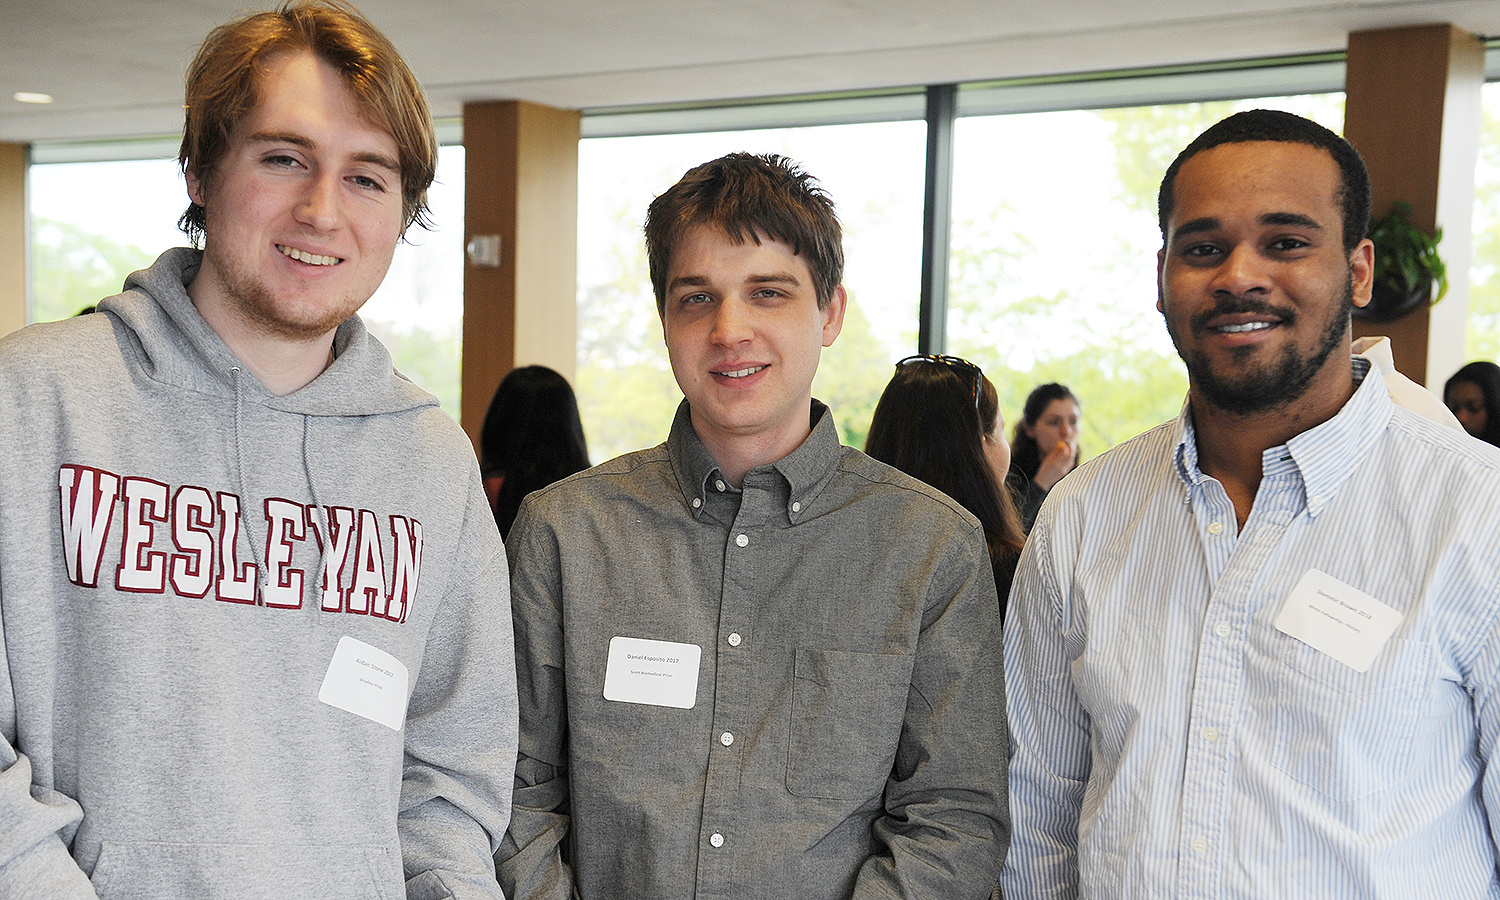 Aidan Stone '17 received the Bradley Prize for excellence in chemistry; Daniel Esposito '17 received the Scott Biomedical Prize; and Dominic Brown '18 received the White Fellowship for excellence in history.